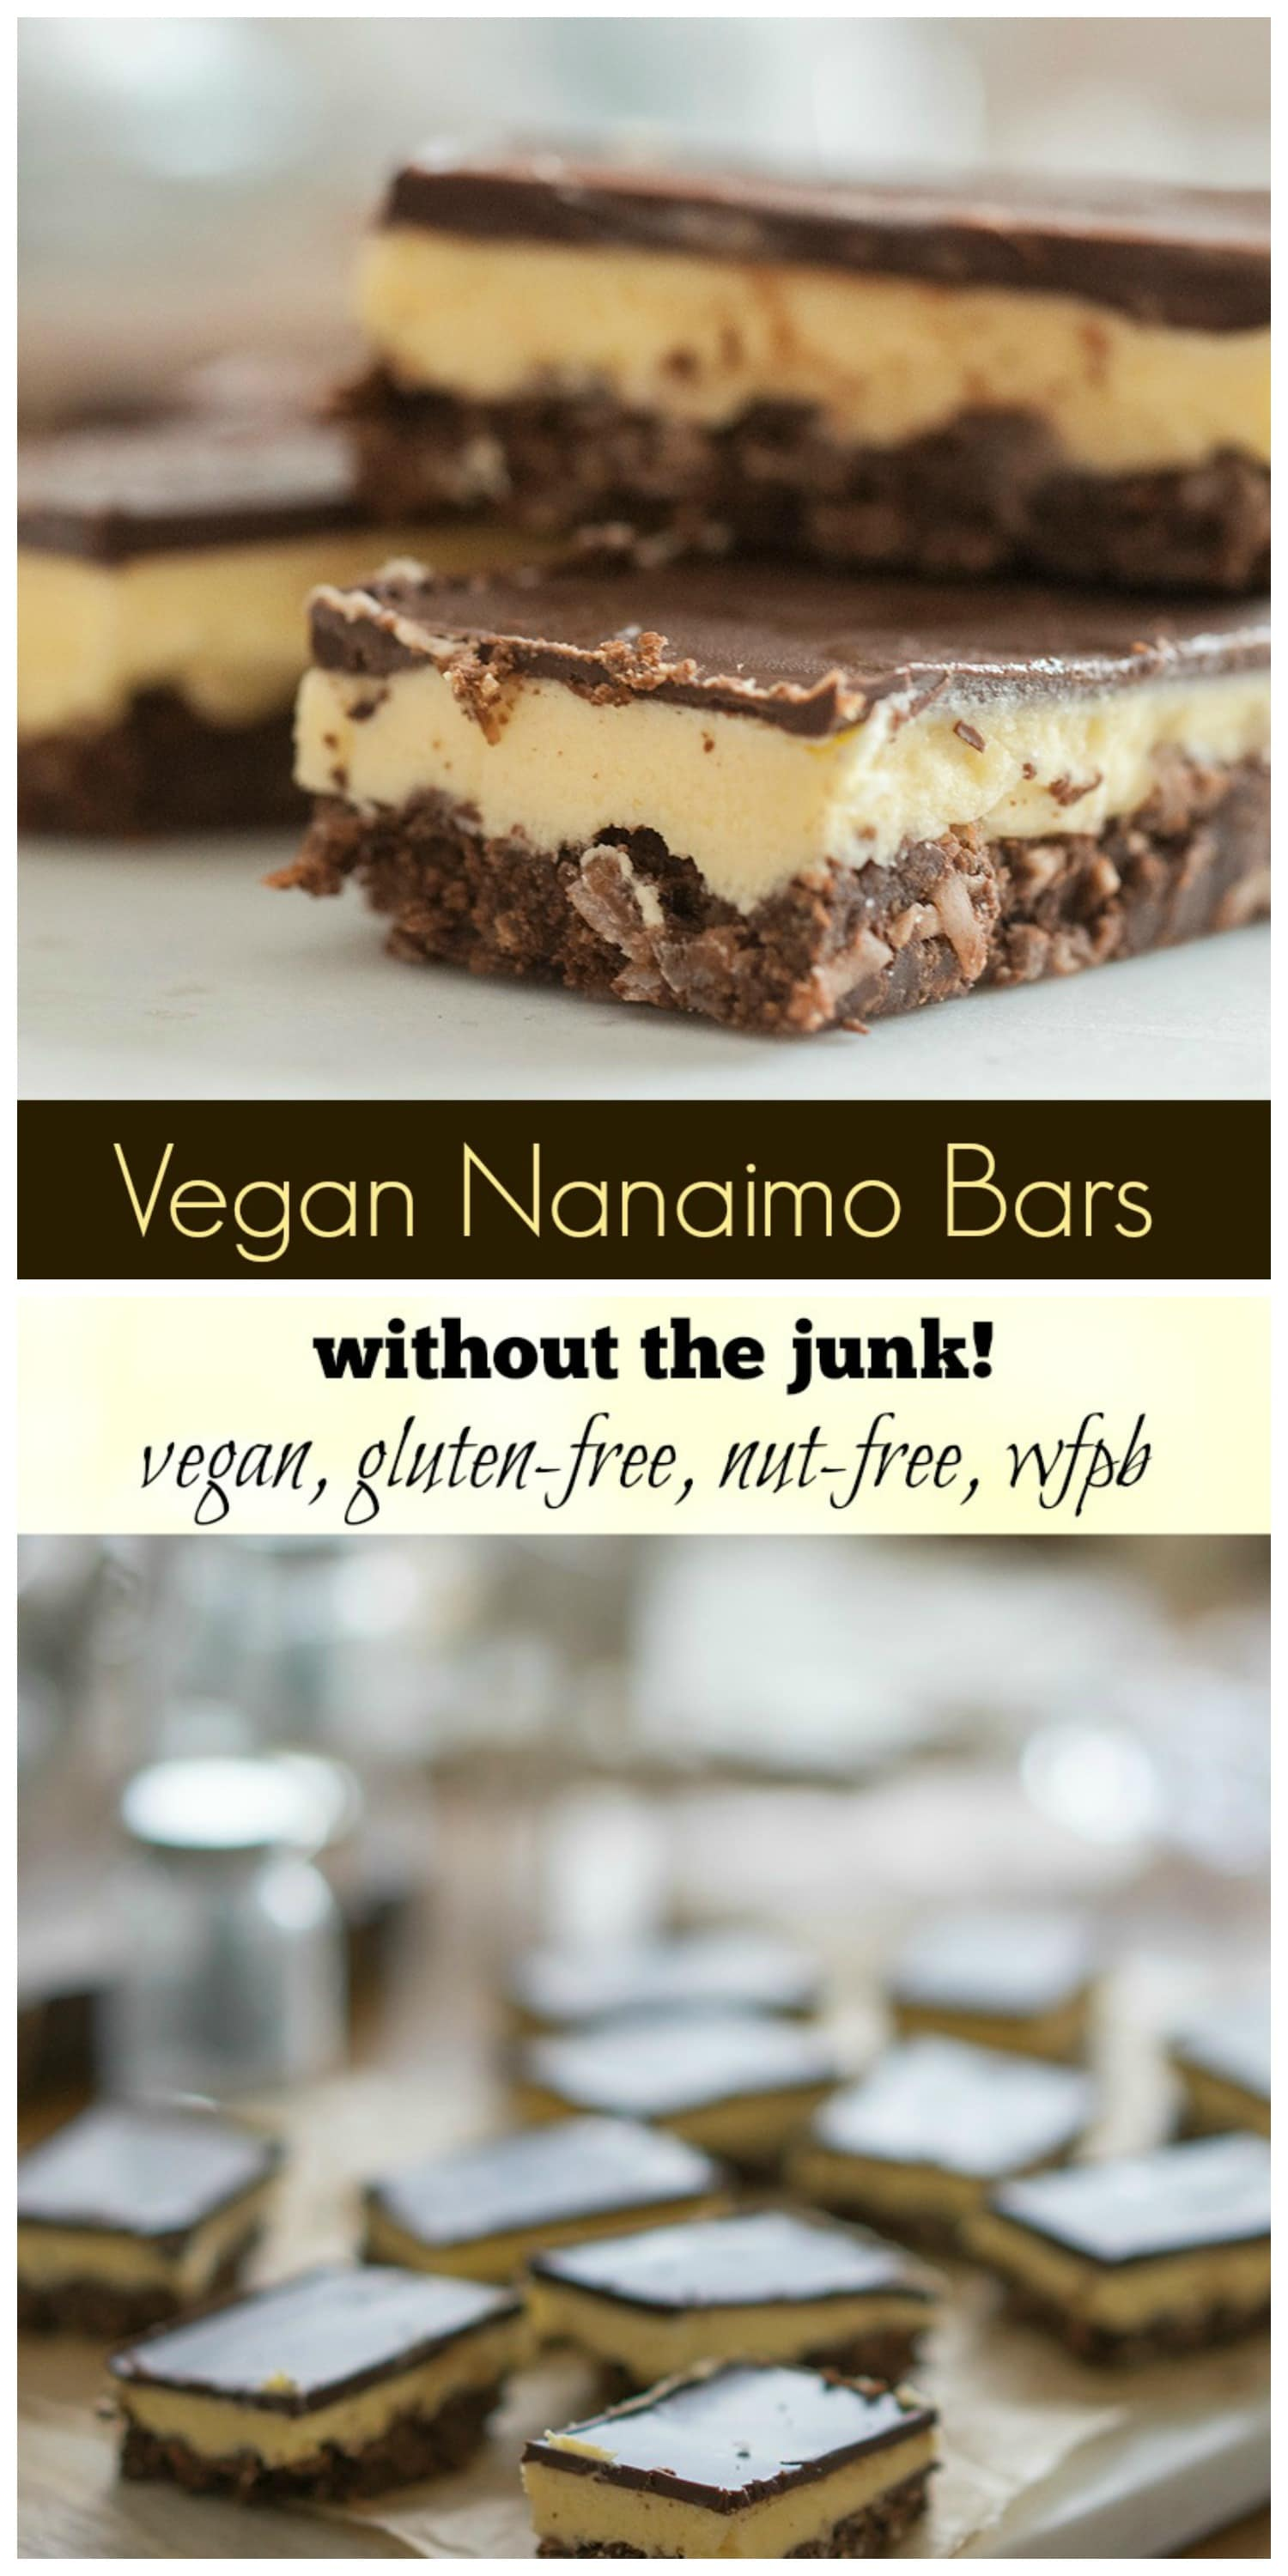 Vegan Nanaimo Bars (without the junk!) vegan, gluten-free, nut-free